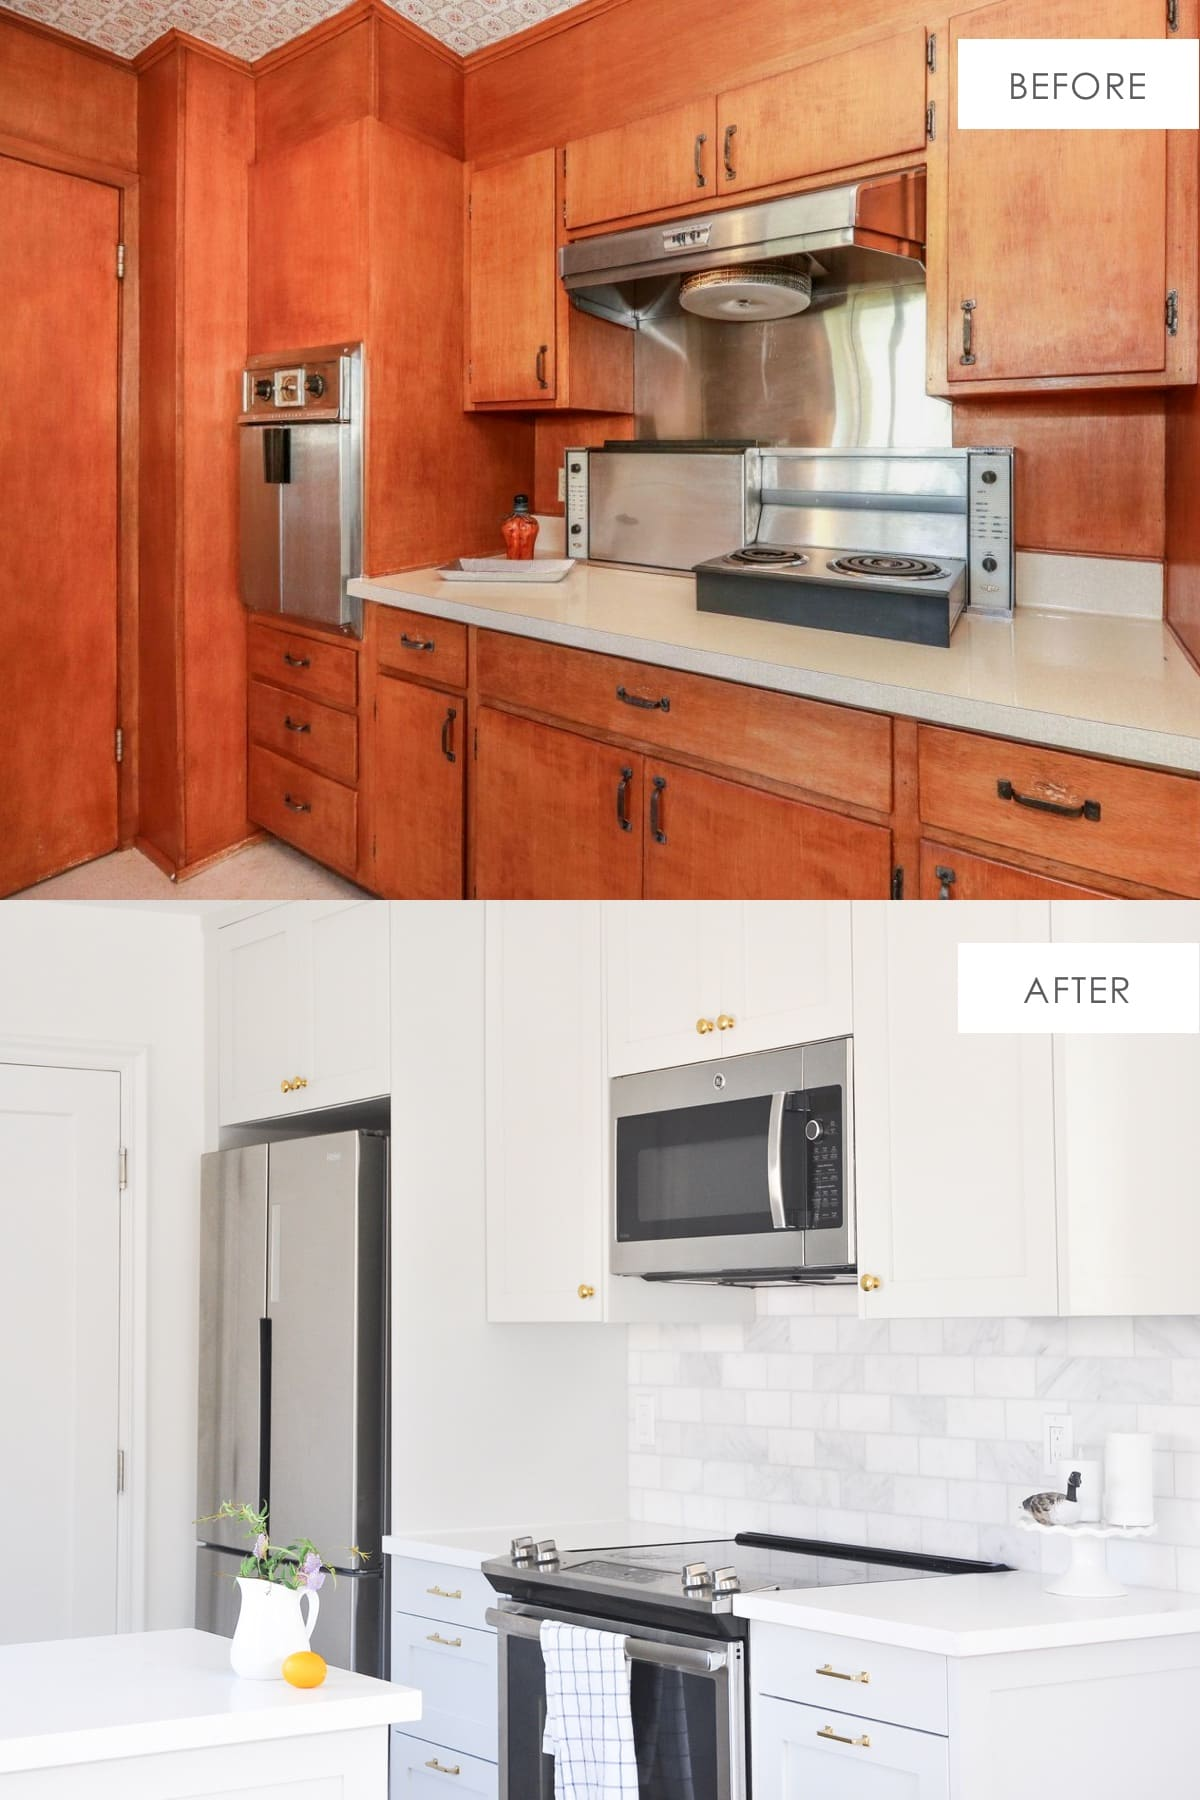 ikea kitchen makeover before and after | ikea sektion kitchen cabinets honest review | kitchen transformation